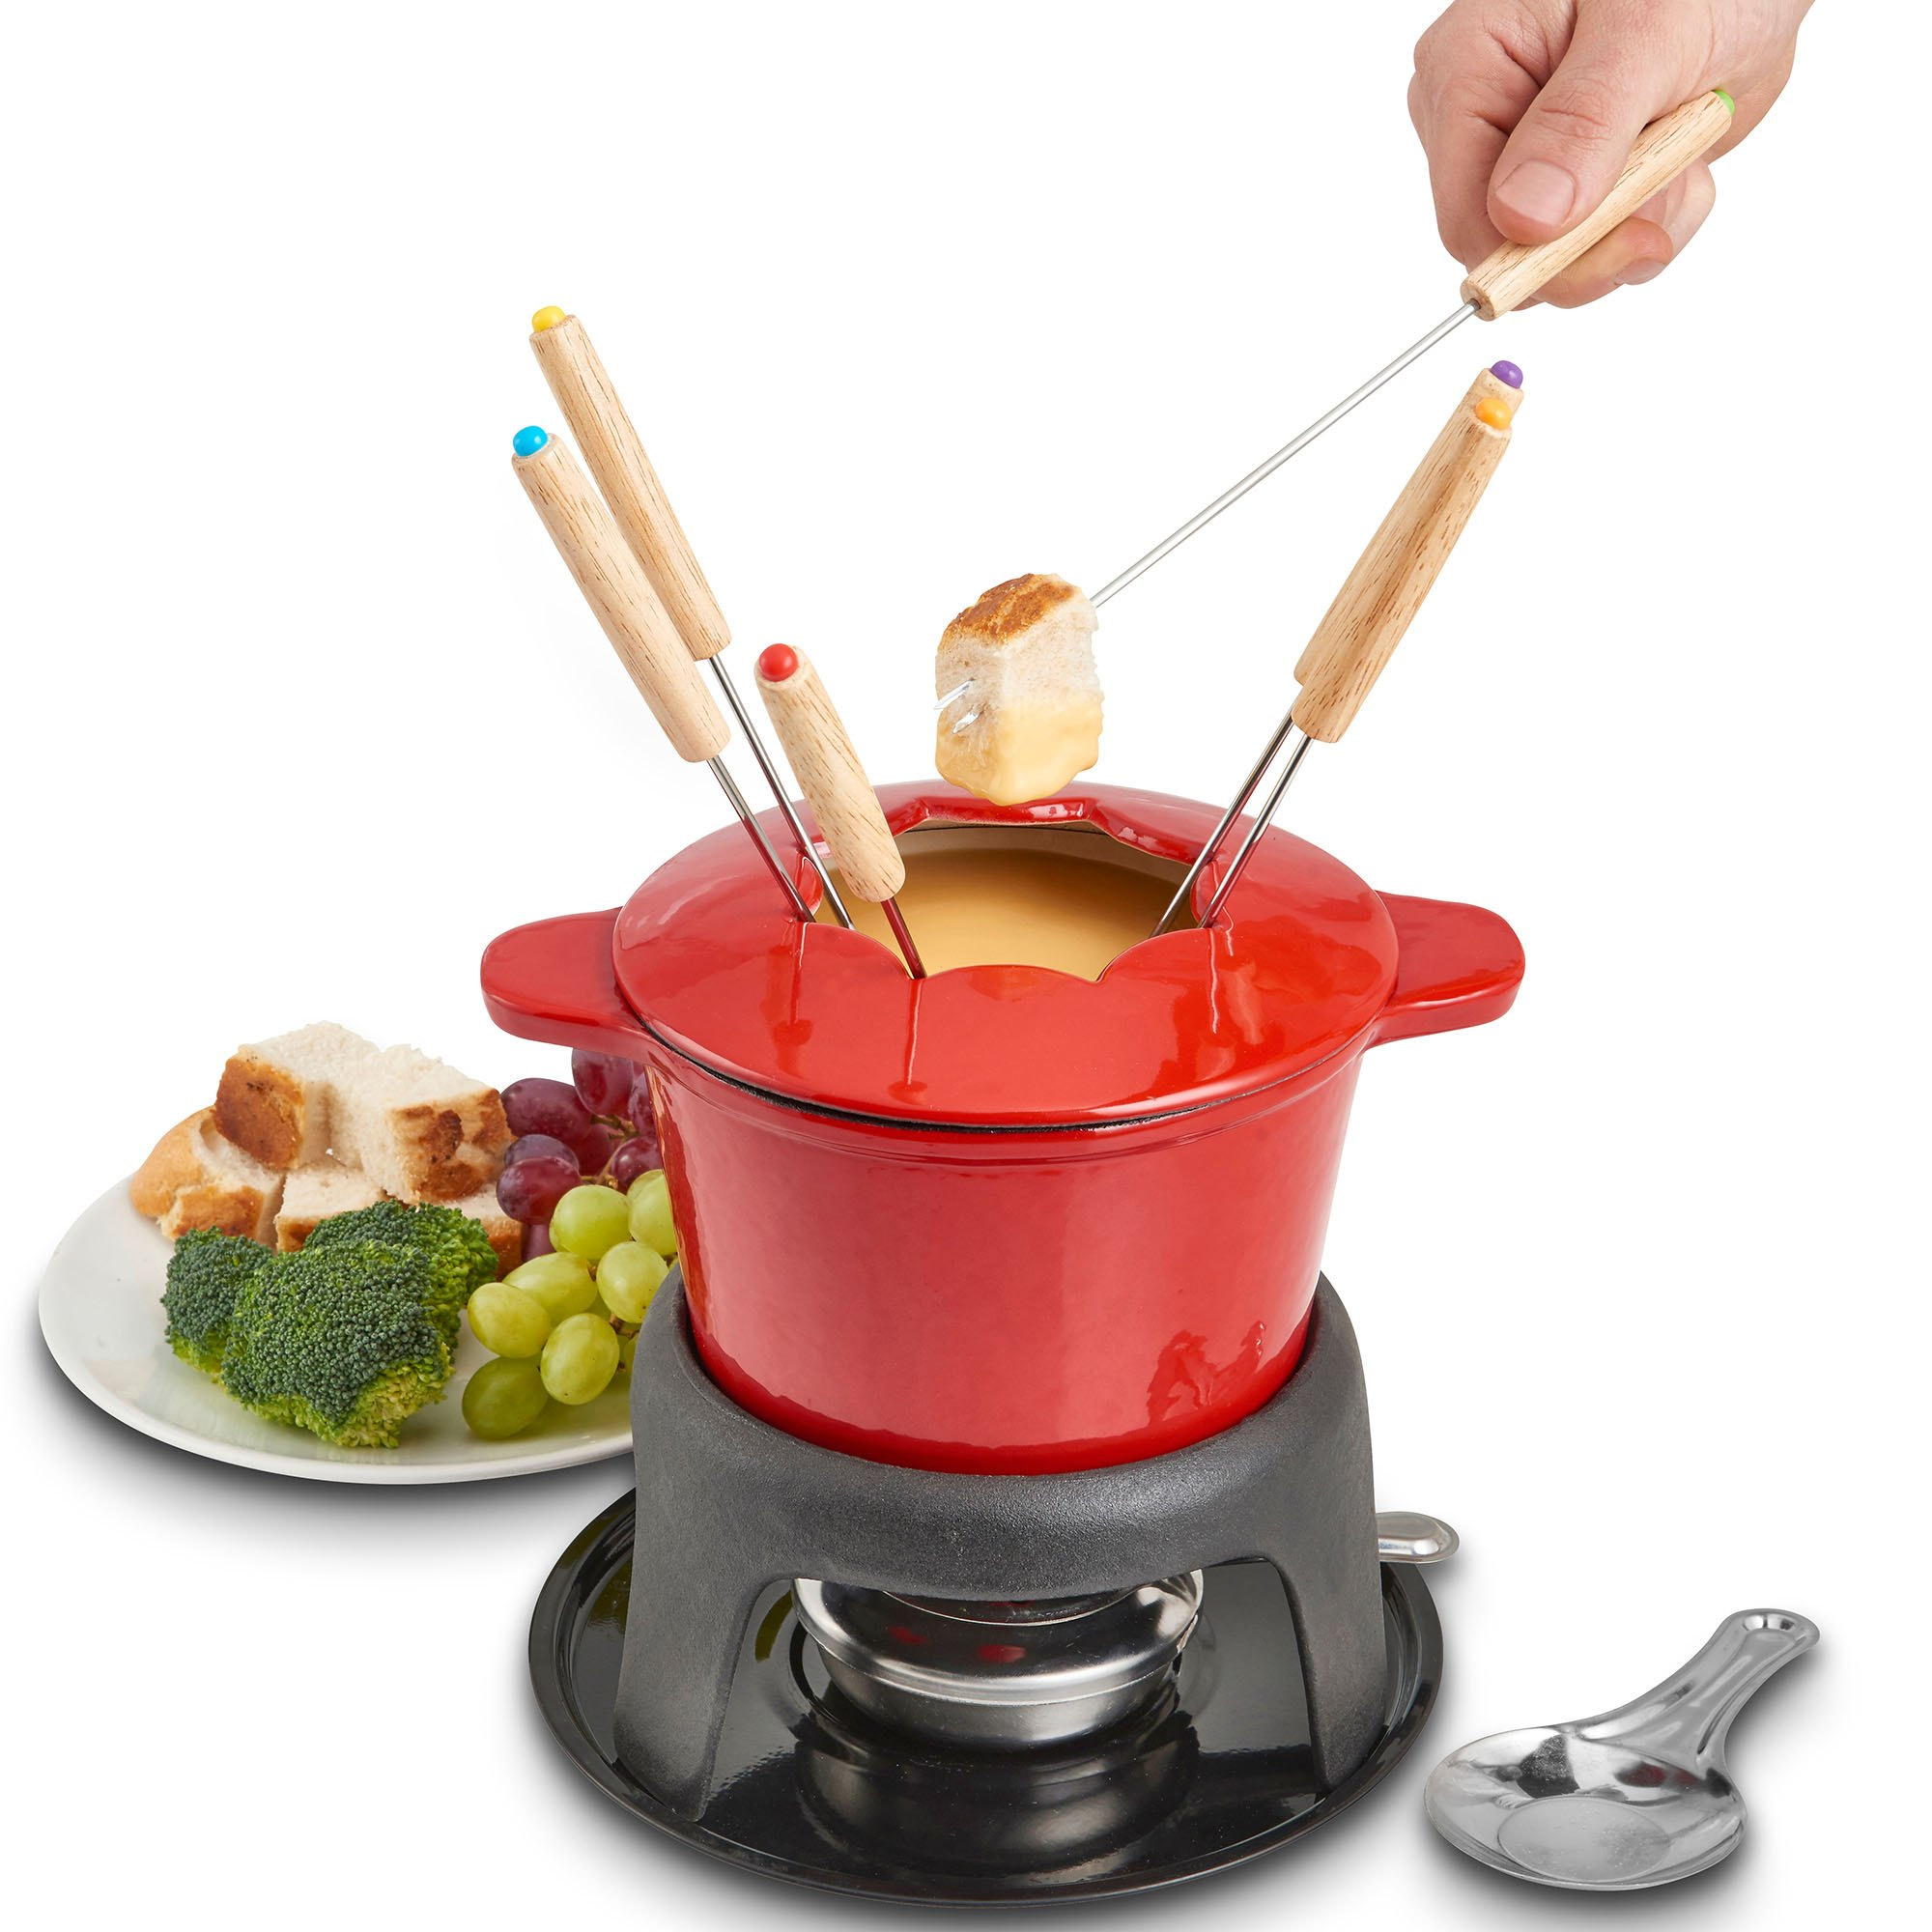 VonShef Fondue Set with 6 Fondue Forks, Stylish Cast Iron Porcelain Enamel Fondue Pot Makes All Styles of Fondue Such as Cheese and Chocolate, 1.6 QT Capacity, Red, 12pc Set by VonShef (Image #6)